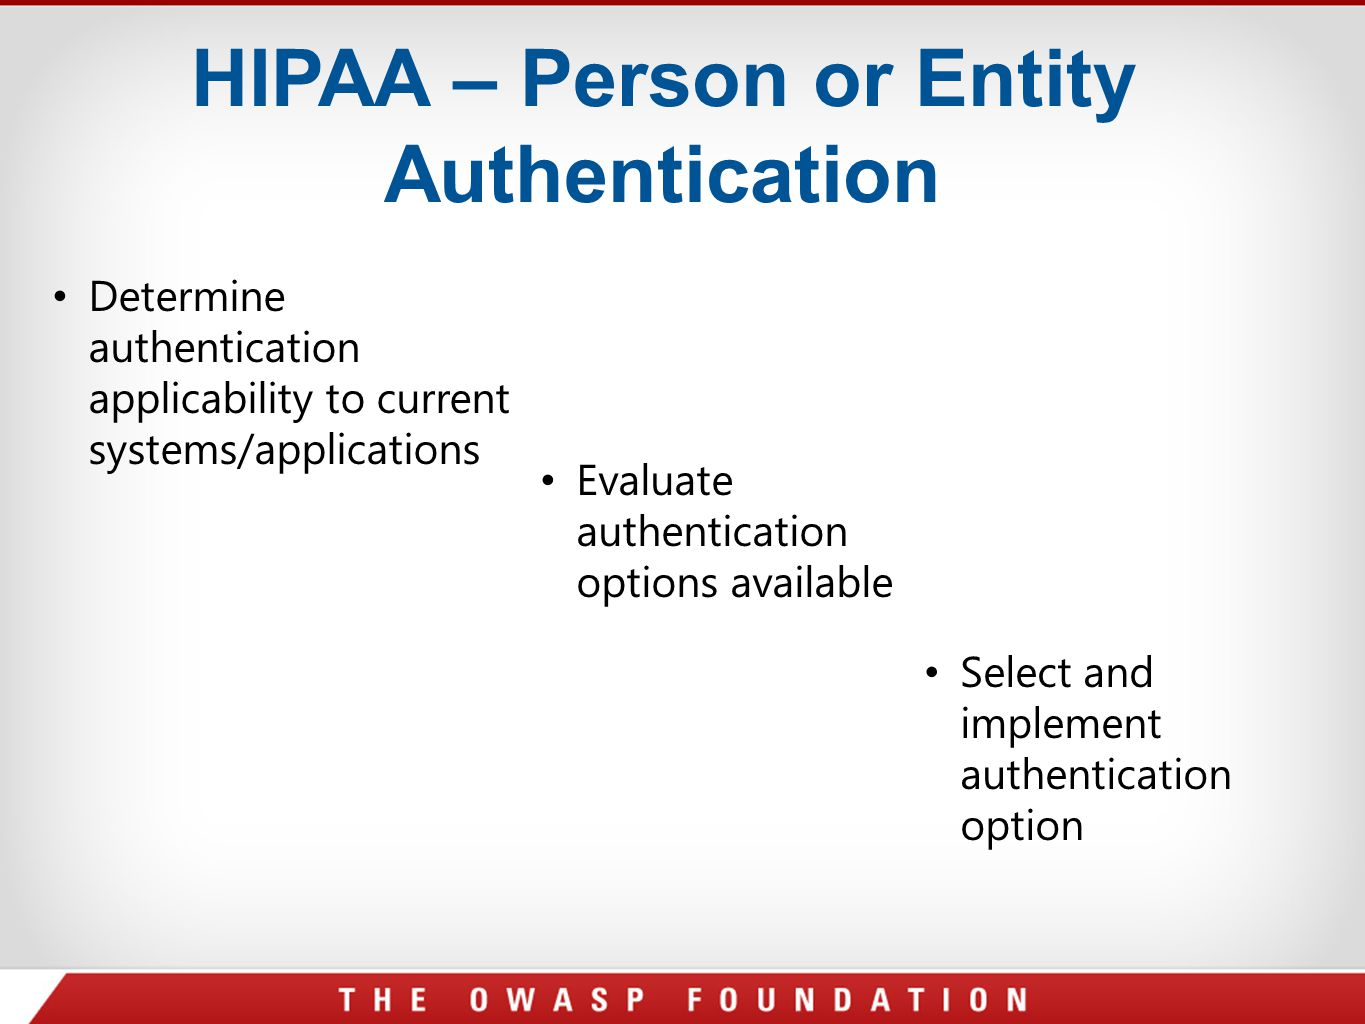 HIPAA – Person or Entity Authentication Determine authentication applicability to current systems/applications Evaluate authentication options availab